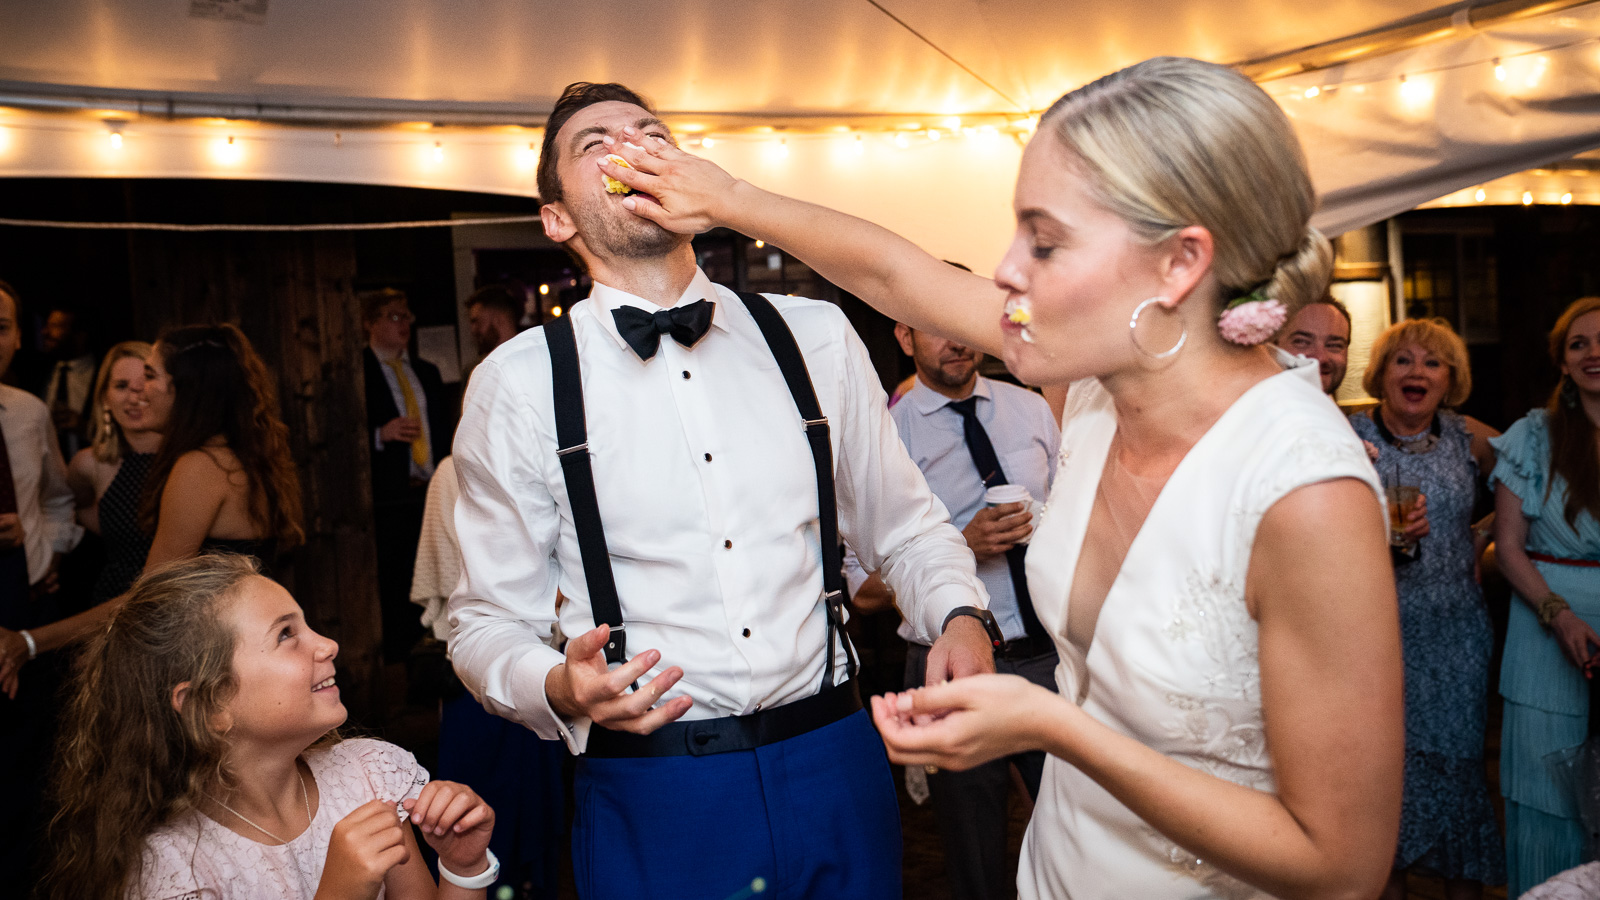 Bride smashing cake in Grooms Face